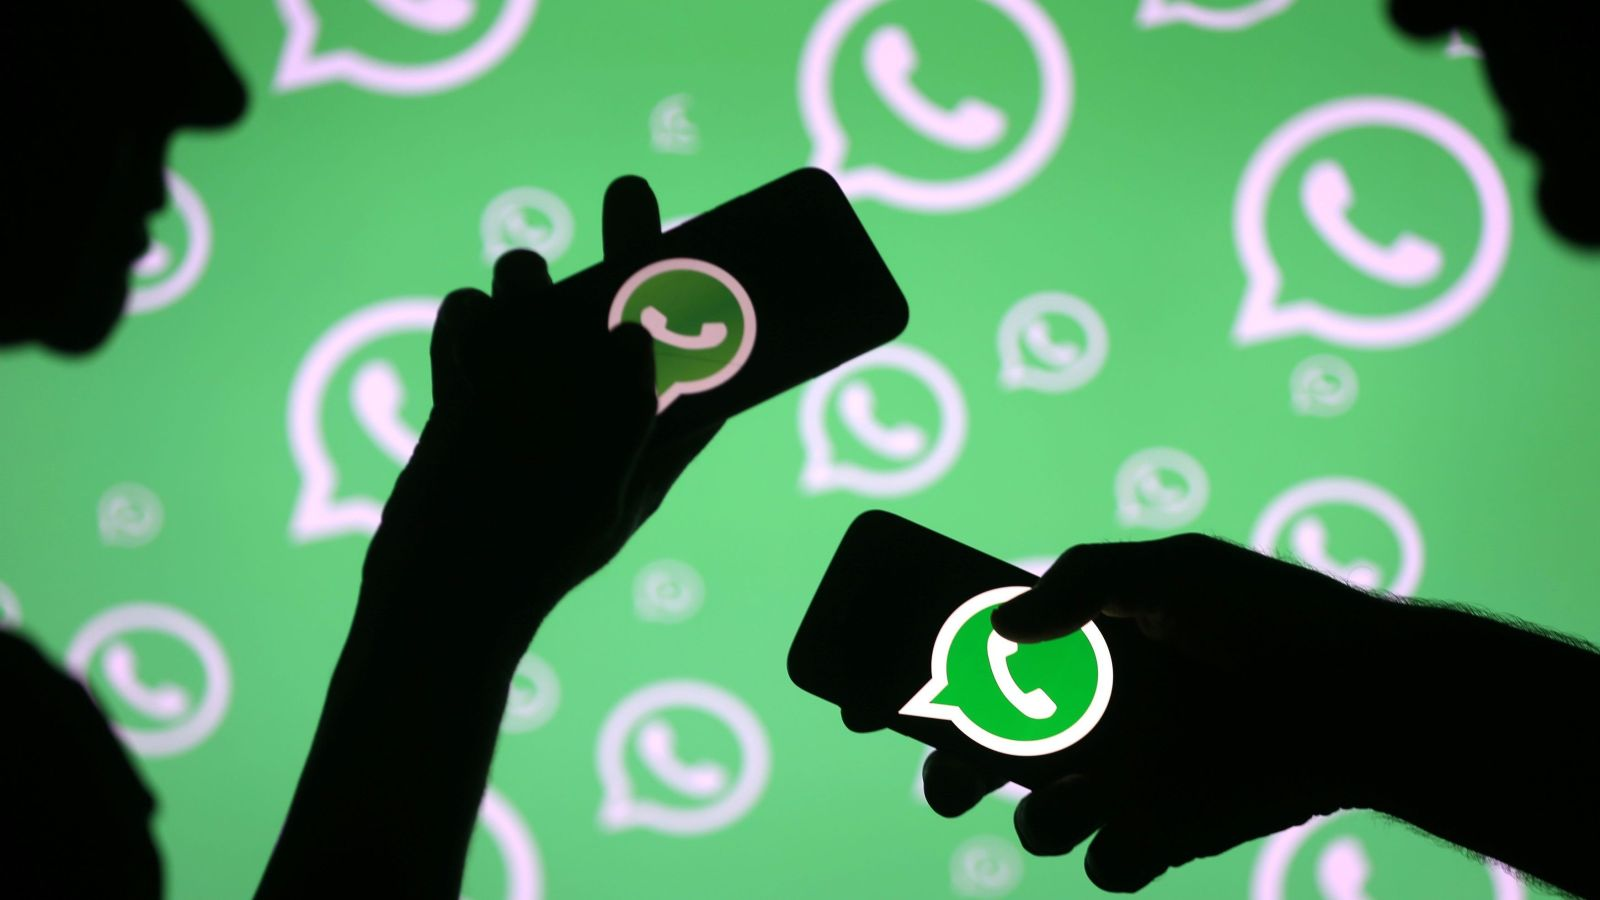 A million Indian users are testing out WhatsApp's payments feature